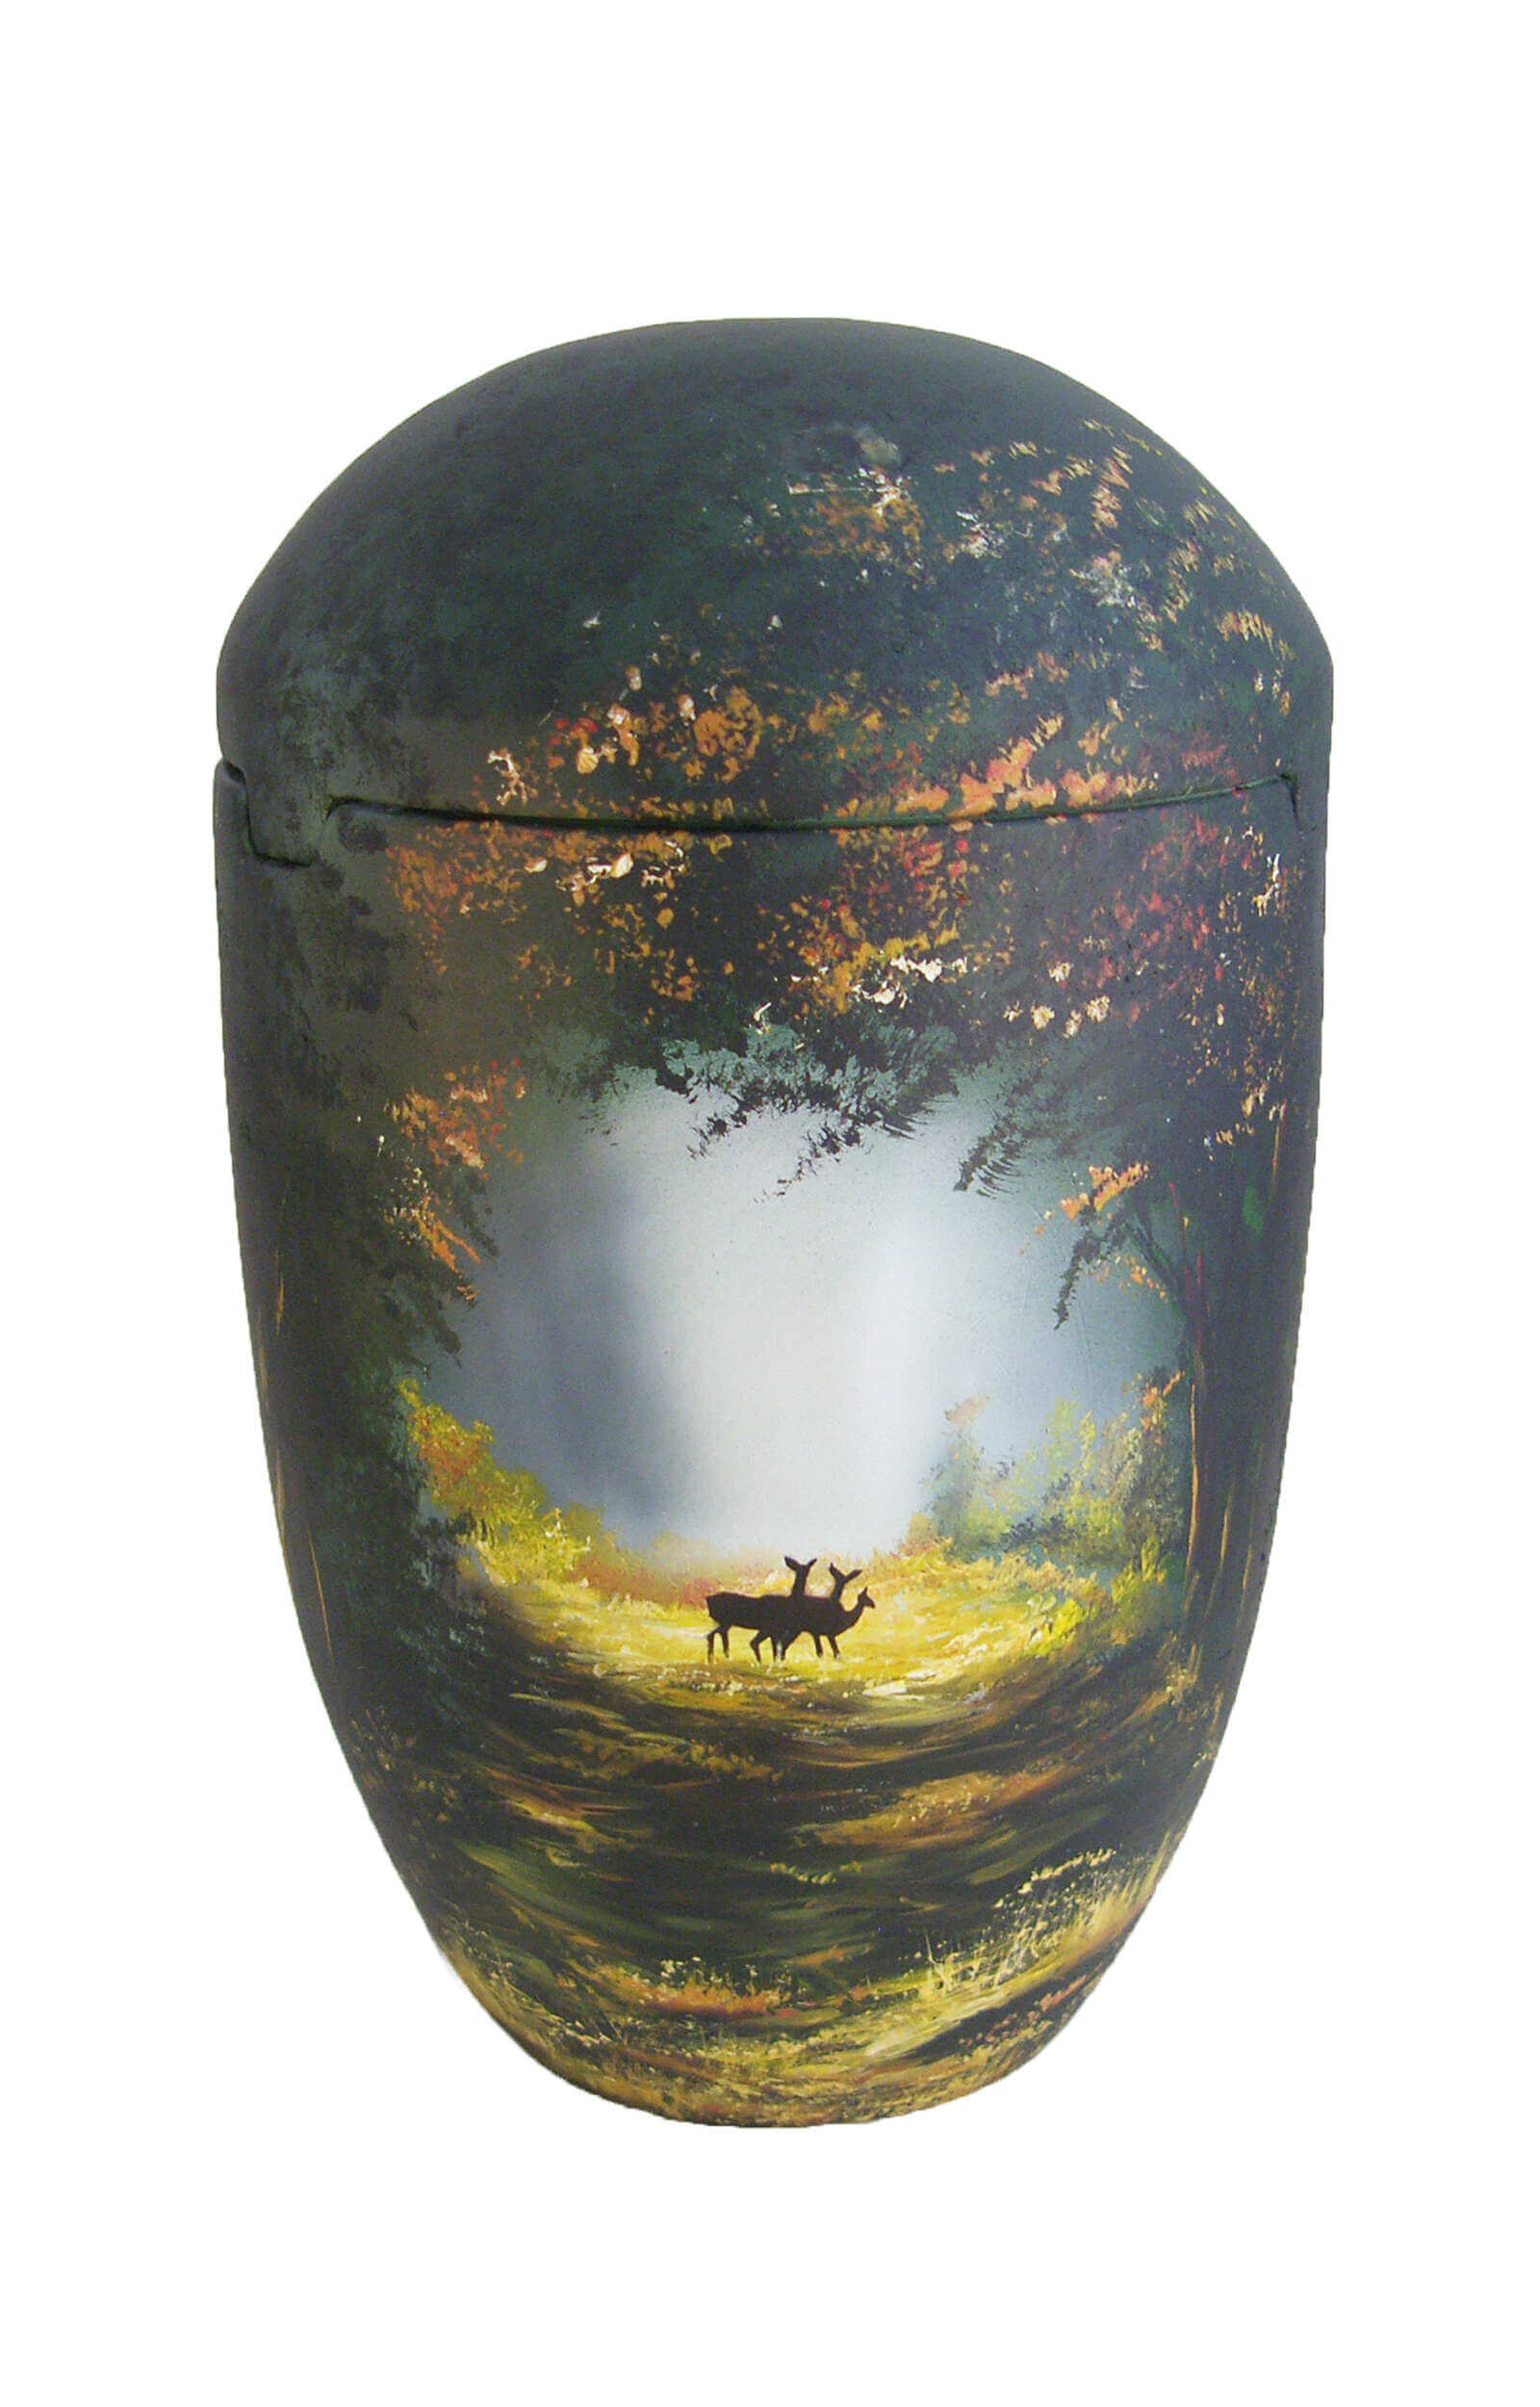 en SBW7028 sea urn forest stag deer sun funeral urns on sale for human ashes tree green black